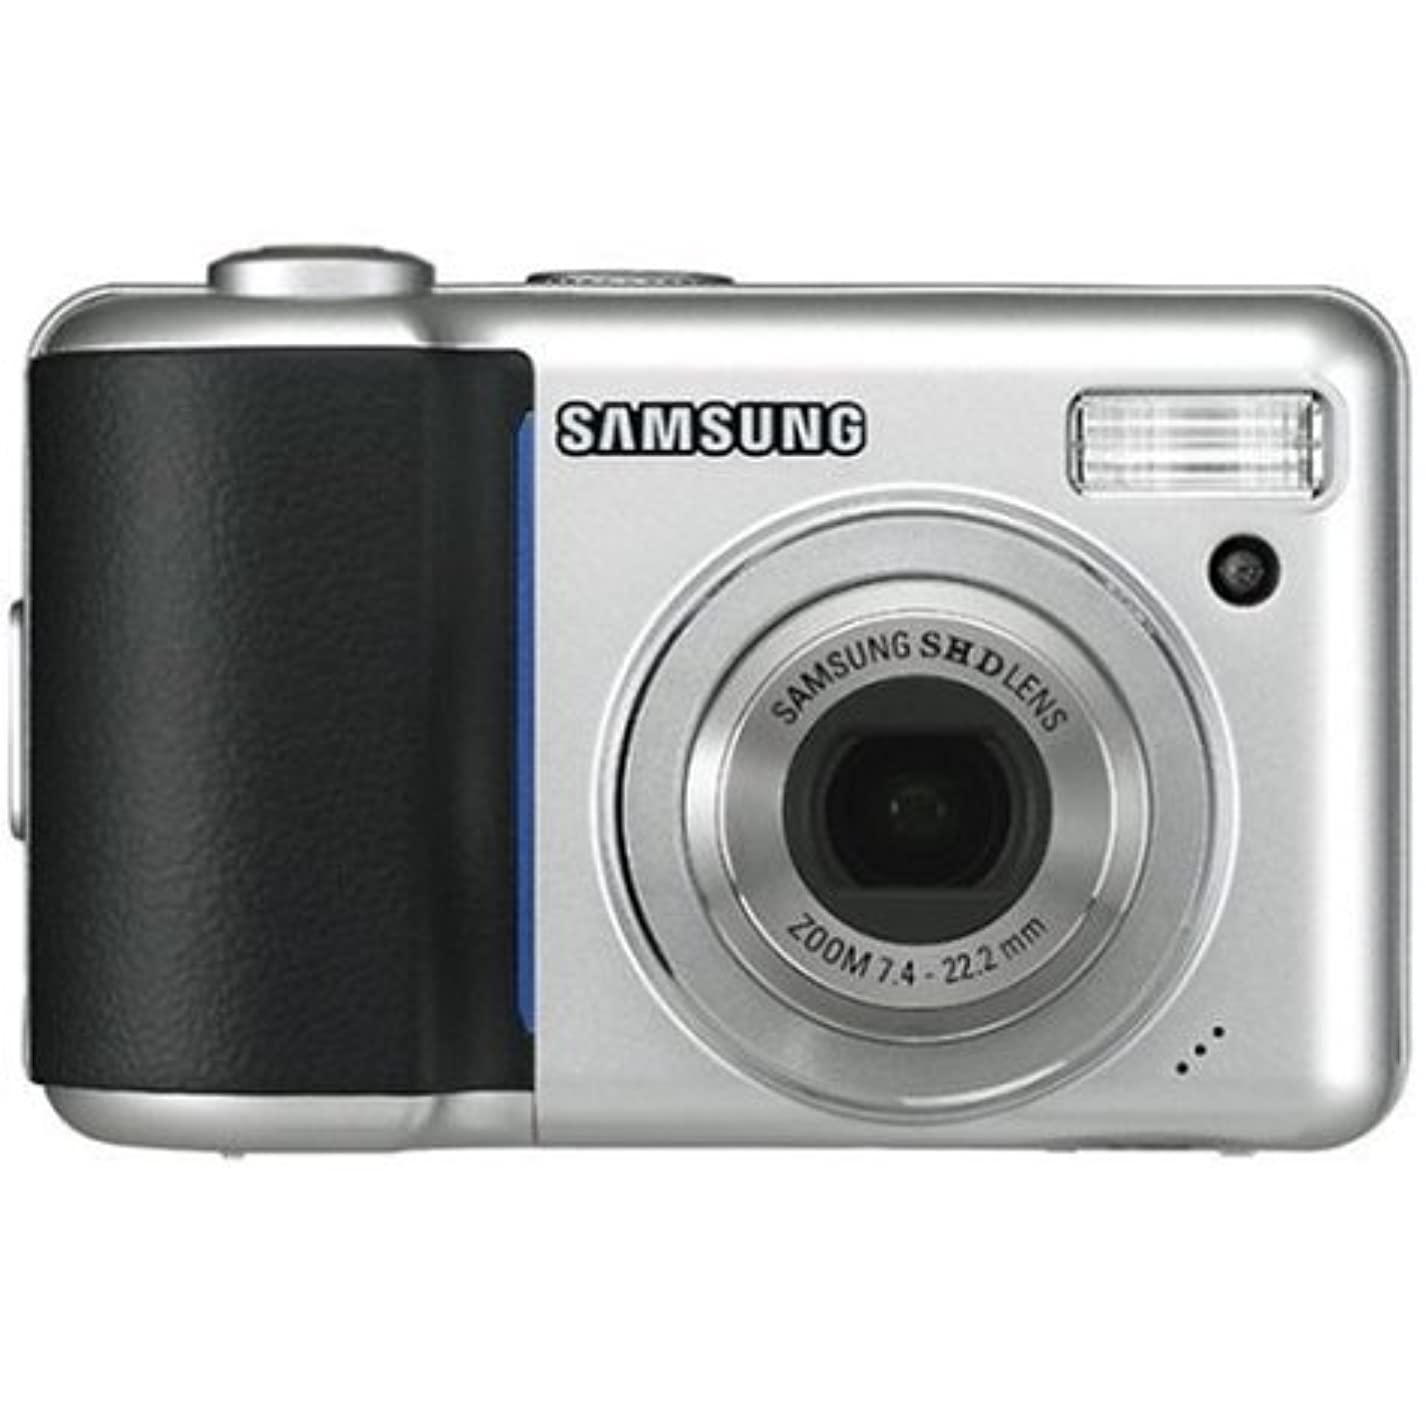 Samsung Digimax S800 8.1 MP Digital Camera with 3x Optical Zoom (Silver) cic751263881613